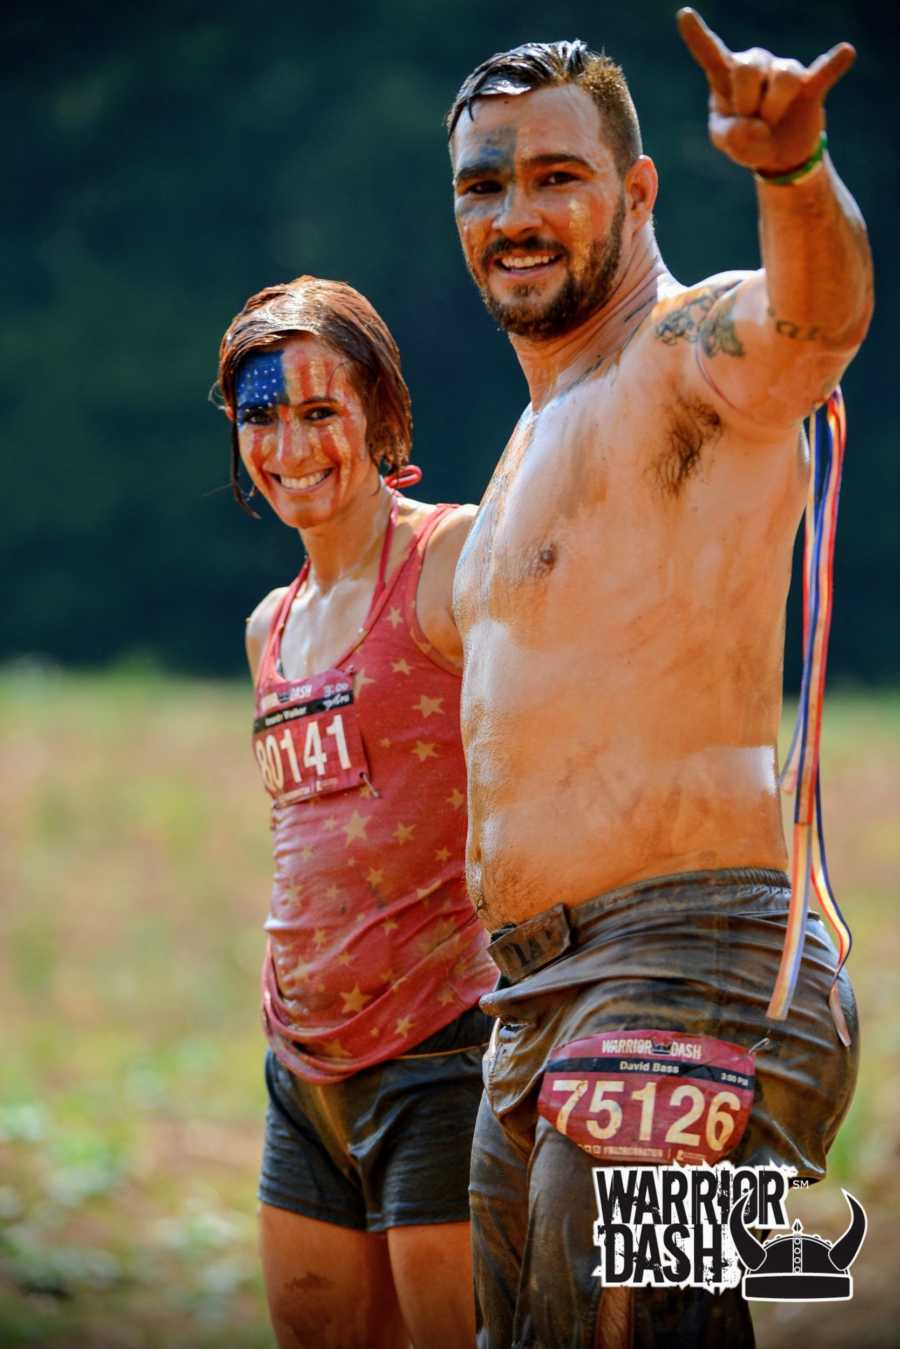 A woman with American flag face paint and her husband stand in muddy clothes